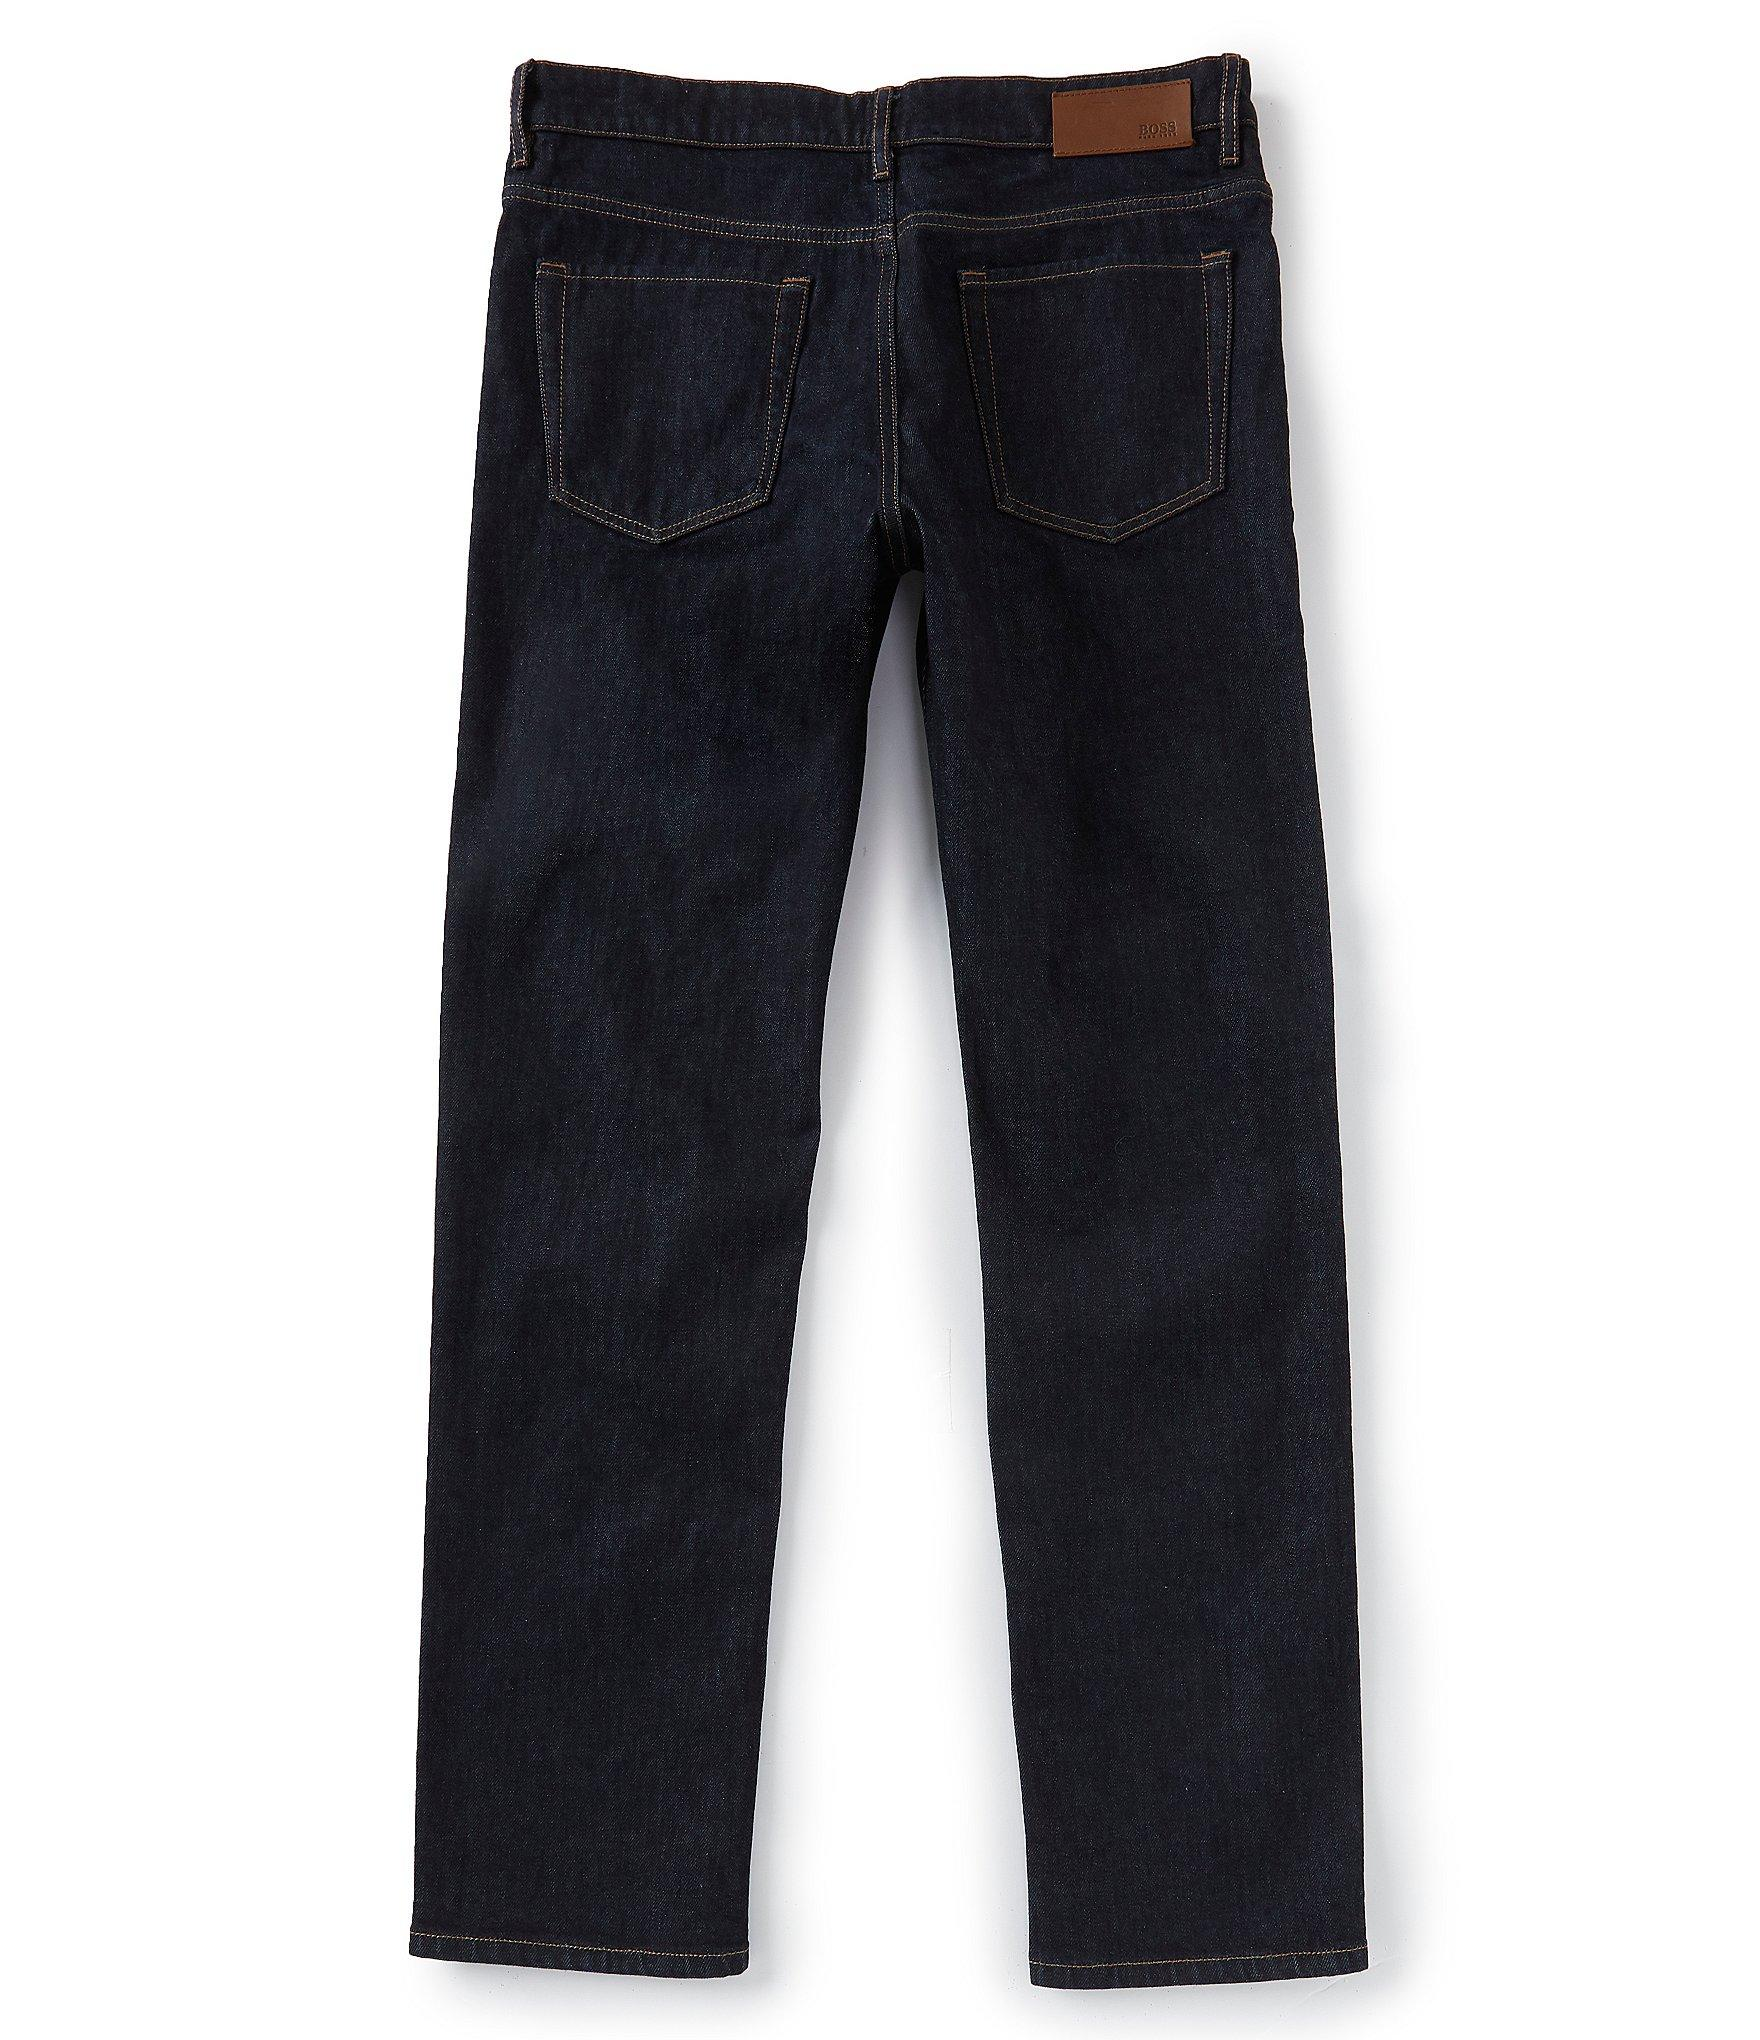 c8d0a52ac ... Boss Albany Relaxed-fit Jeans for Men - Lyst. View fullscreen